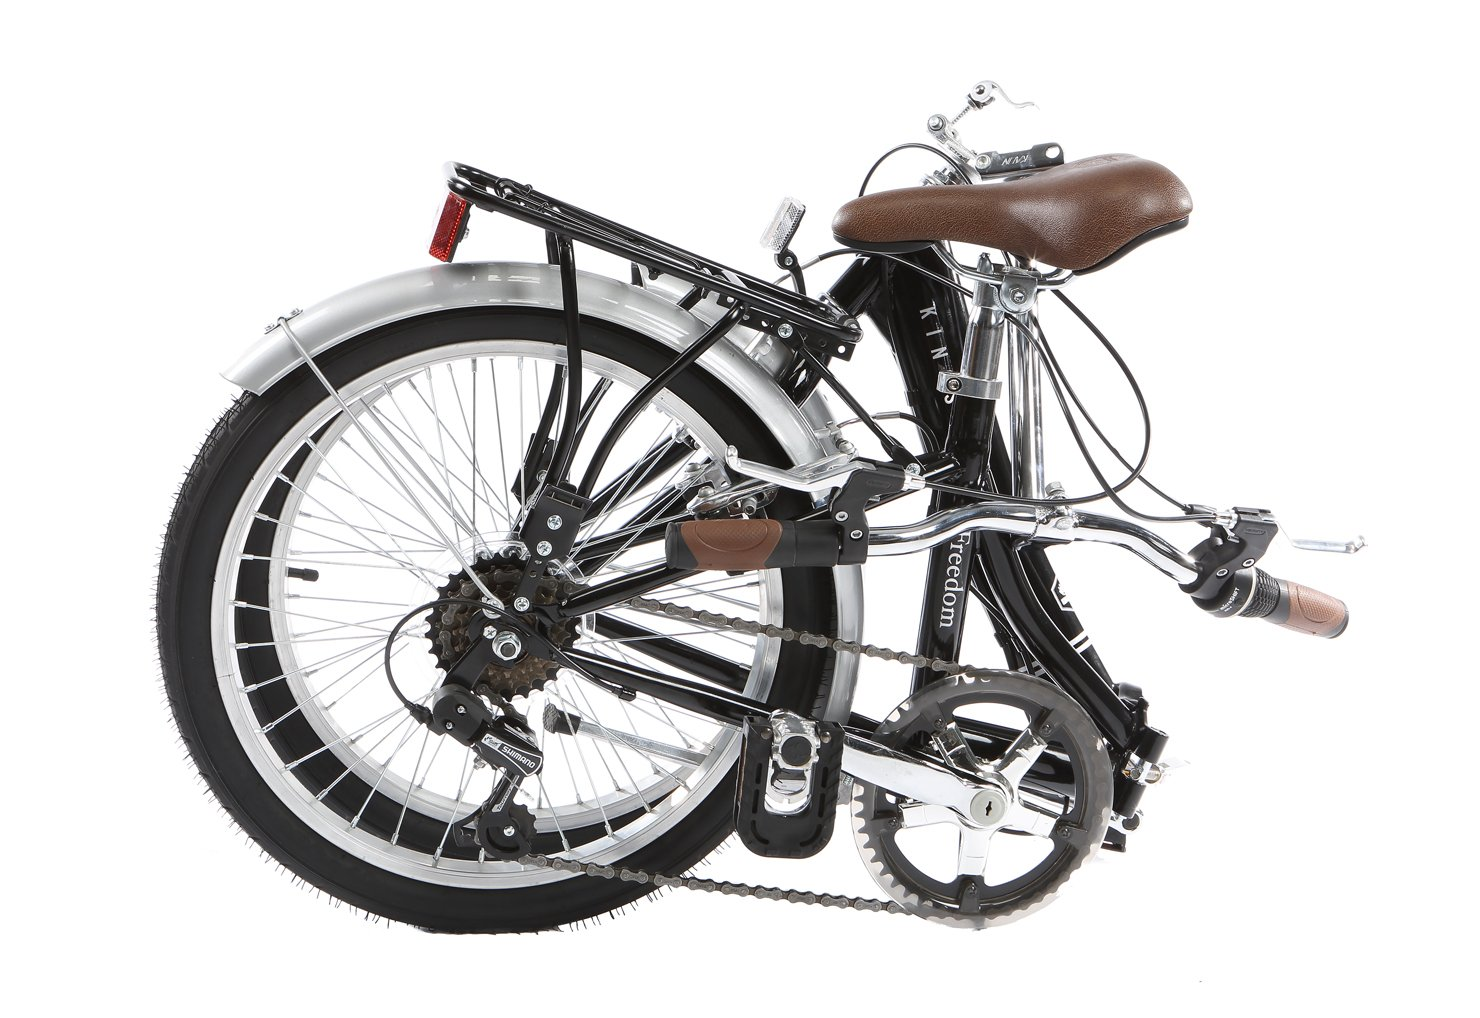 Kingston Freedom - Bicicleta Plegable, Aluminio, Negro: Amazon.es: Deportes y aire libre